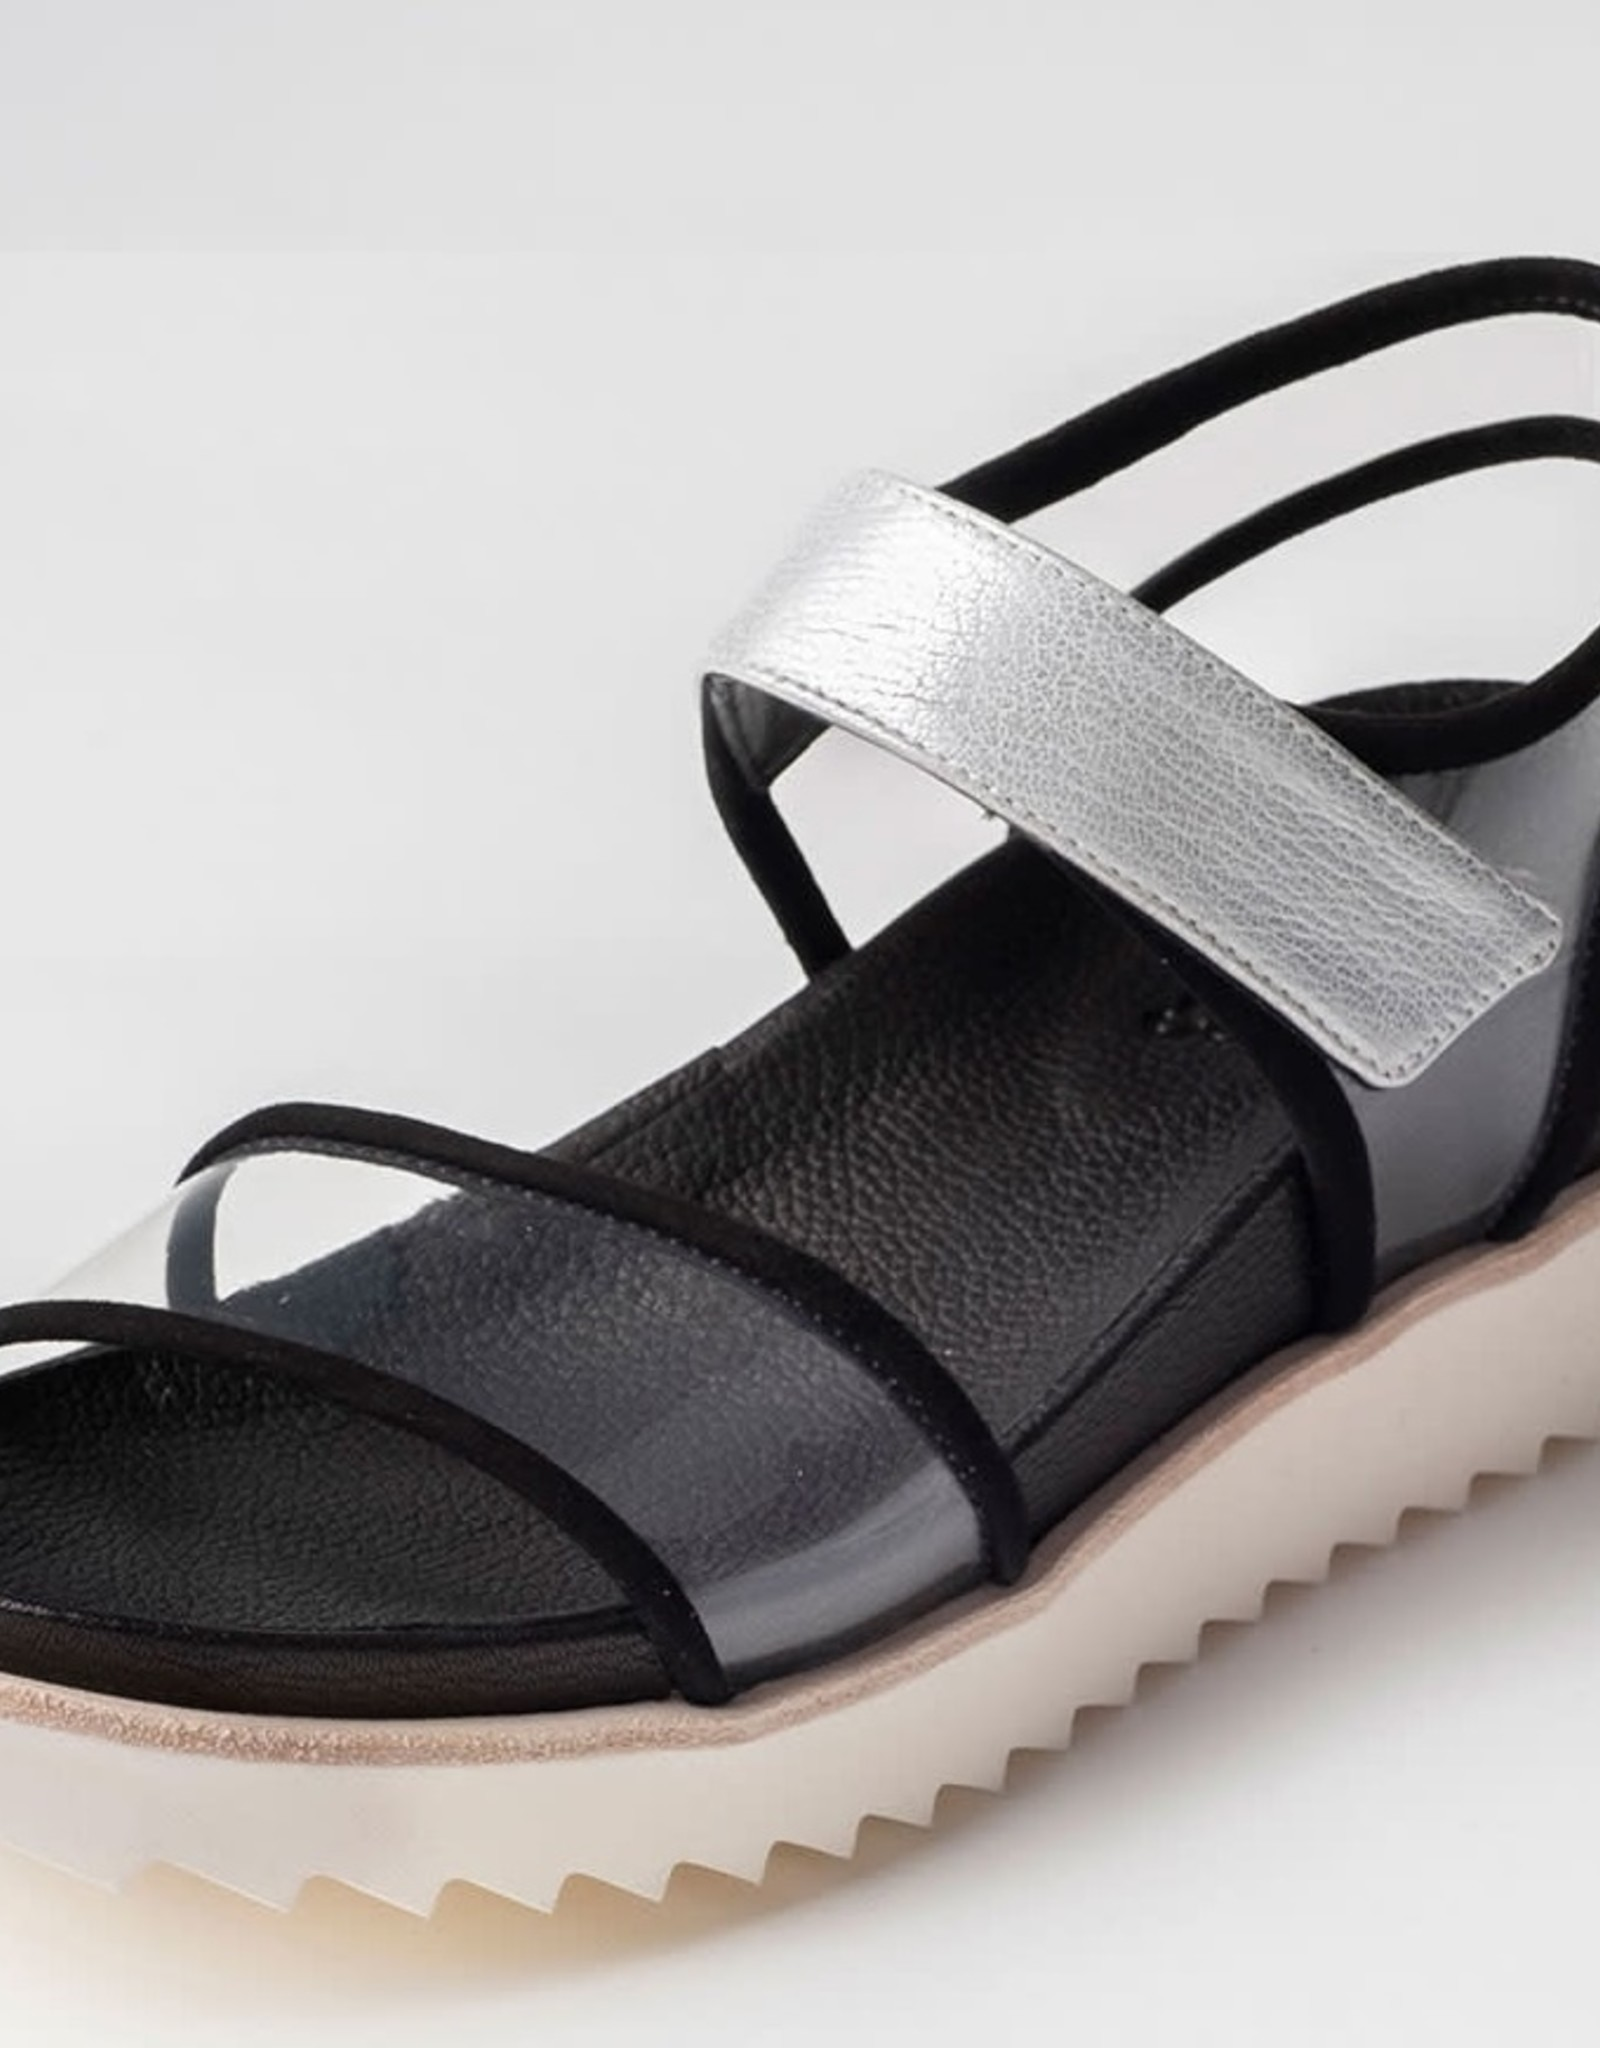 HOMERS -Lucite Sandal